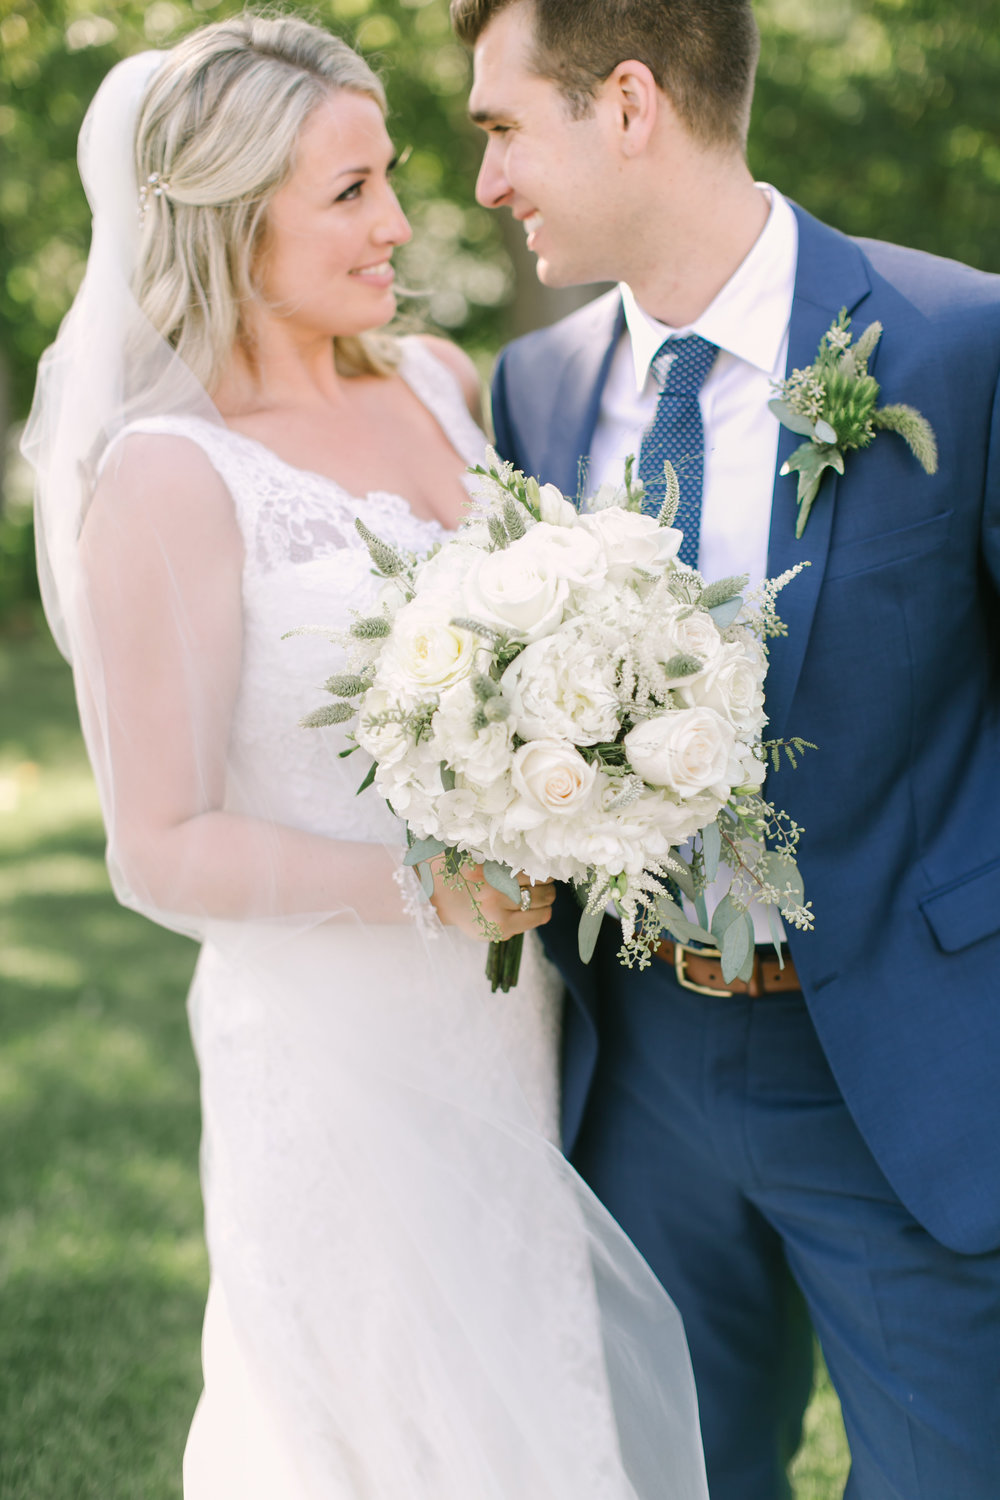 Love&LightPhotographs_Kate&Eli_Wedding_Preview-23.jpg